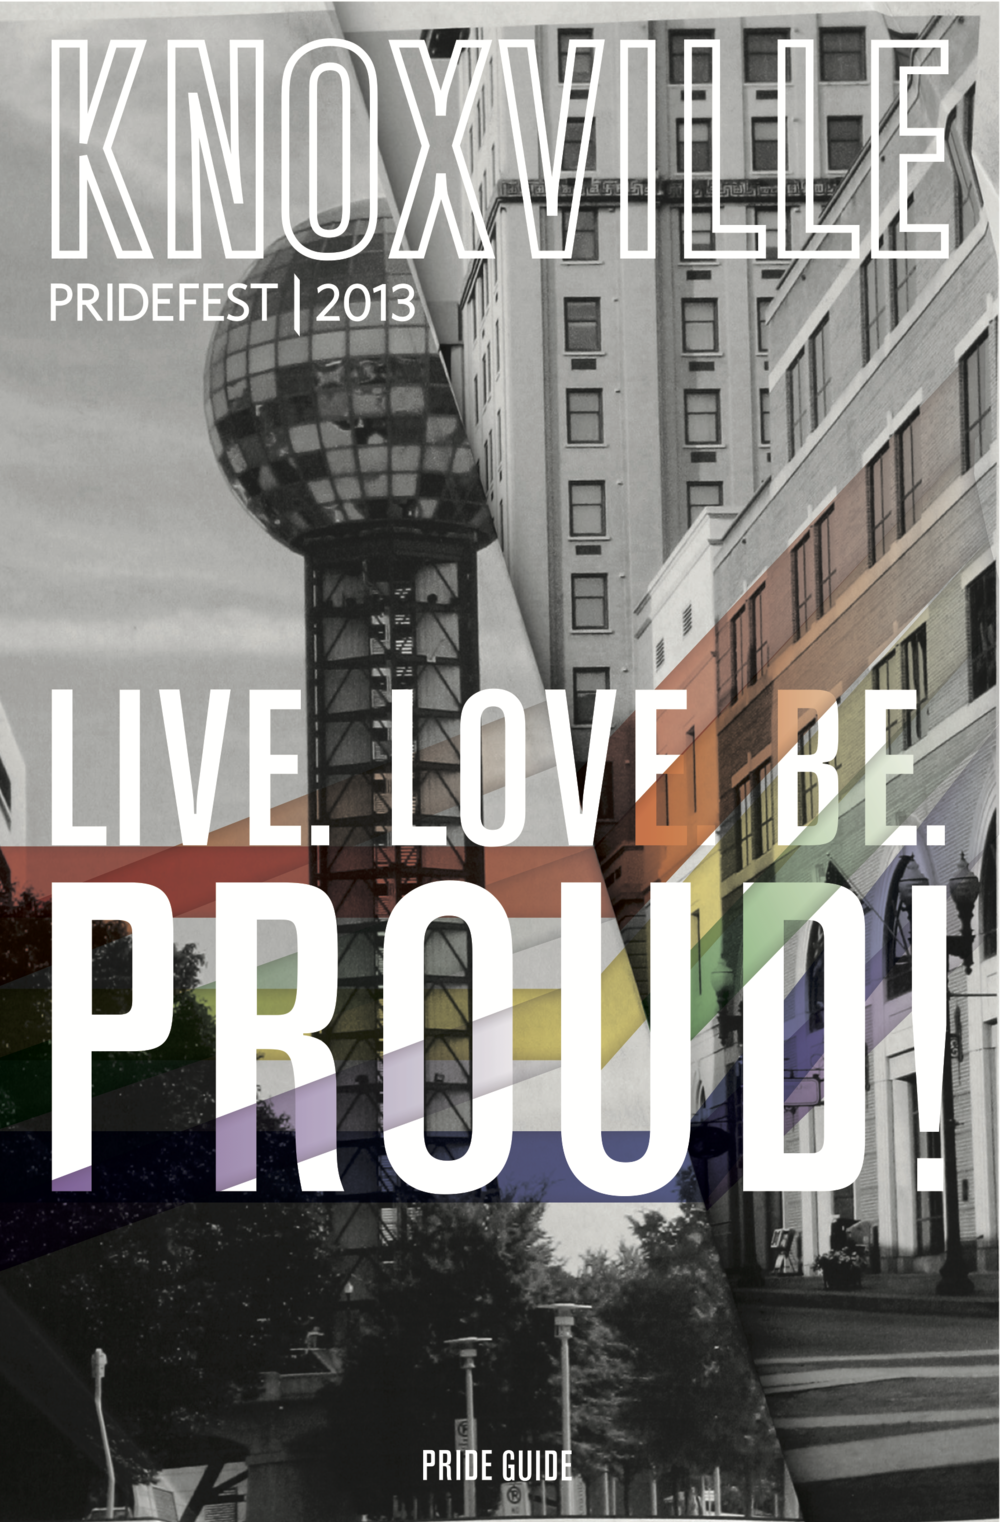 Knoxville-Pride-Book-2013 cover.png